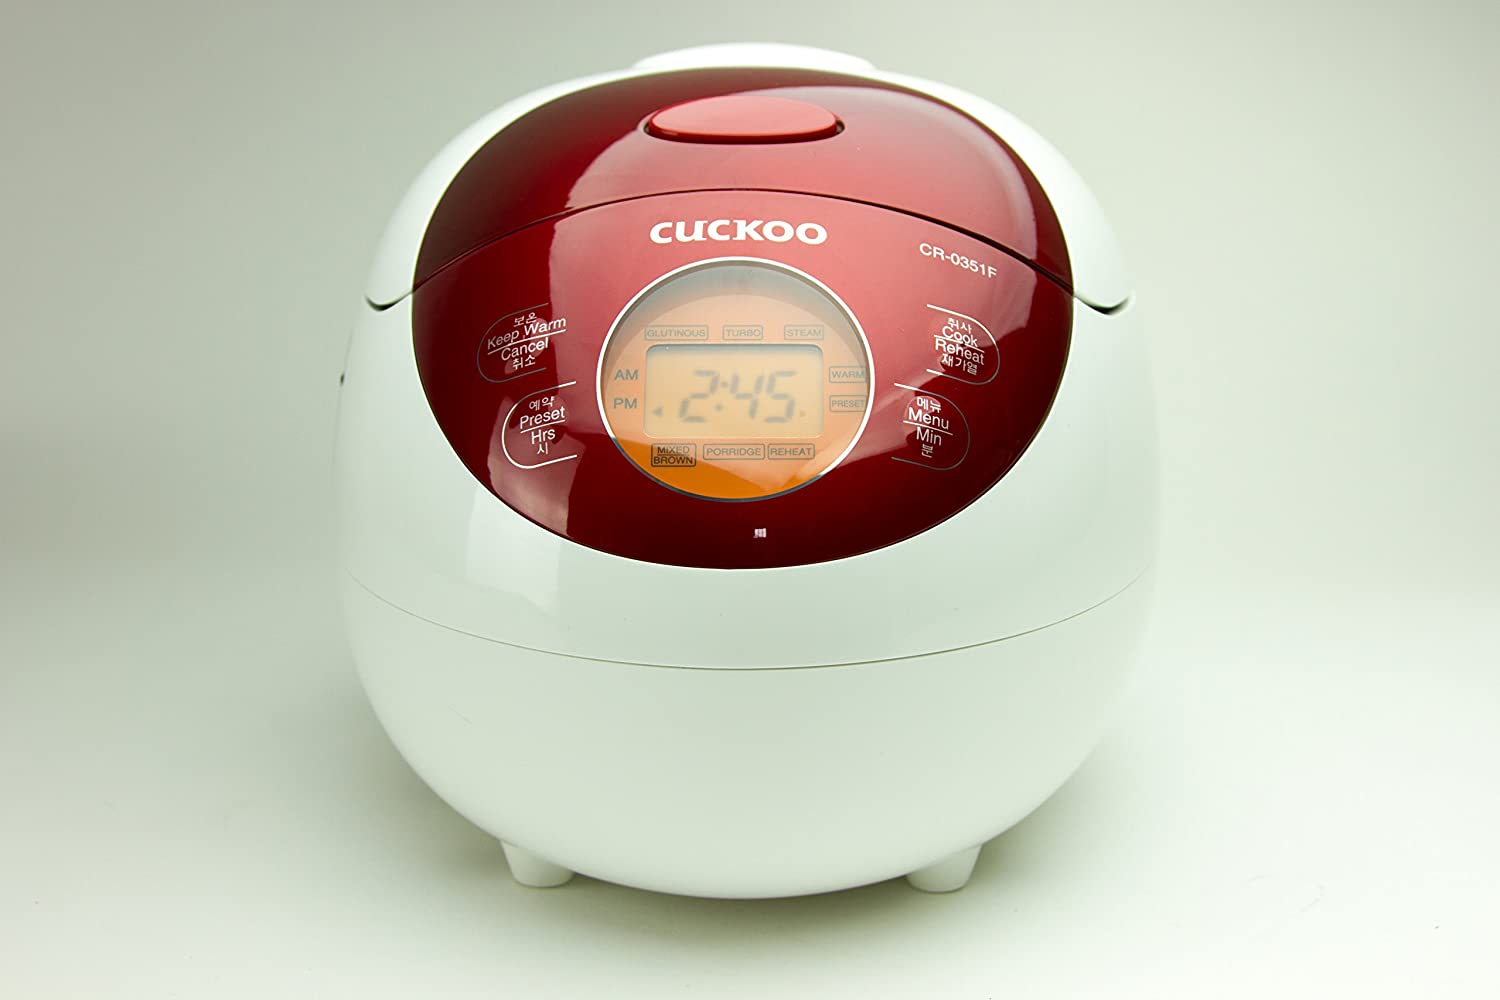 Cuckoo CR-0351FR Electric Heating Rice Cooker (Red)